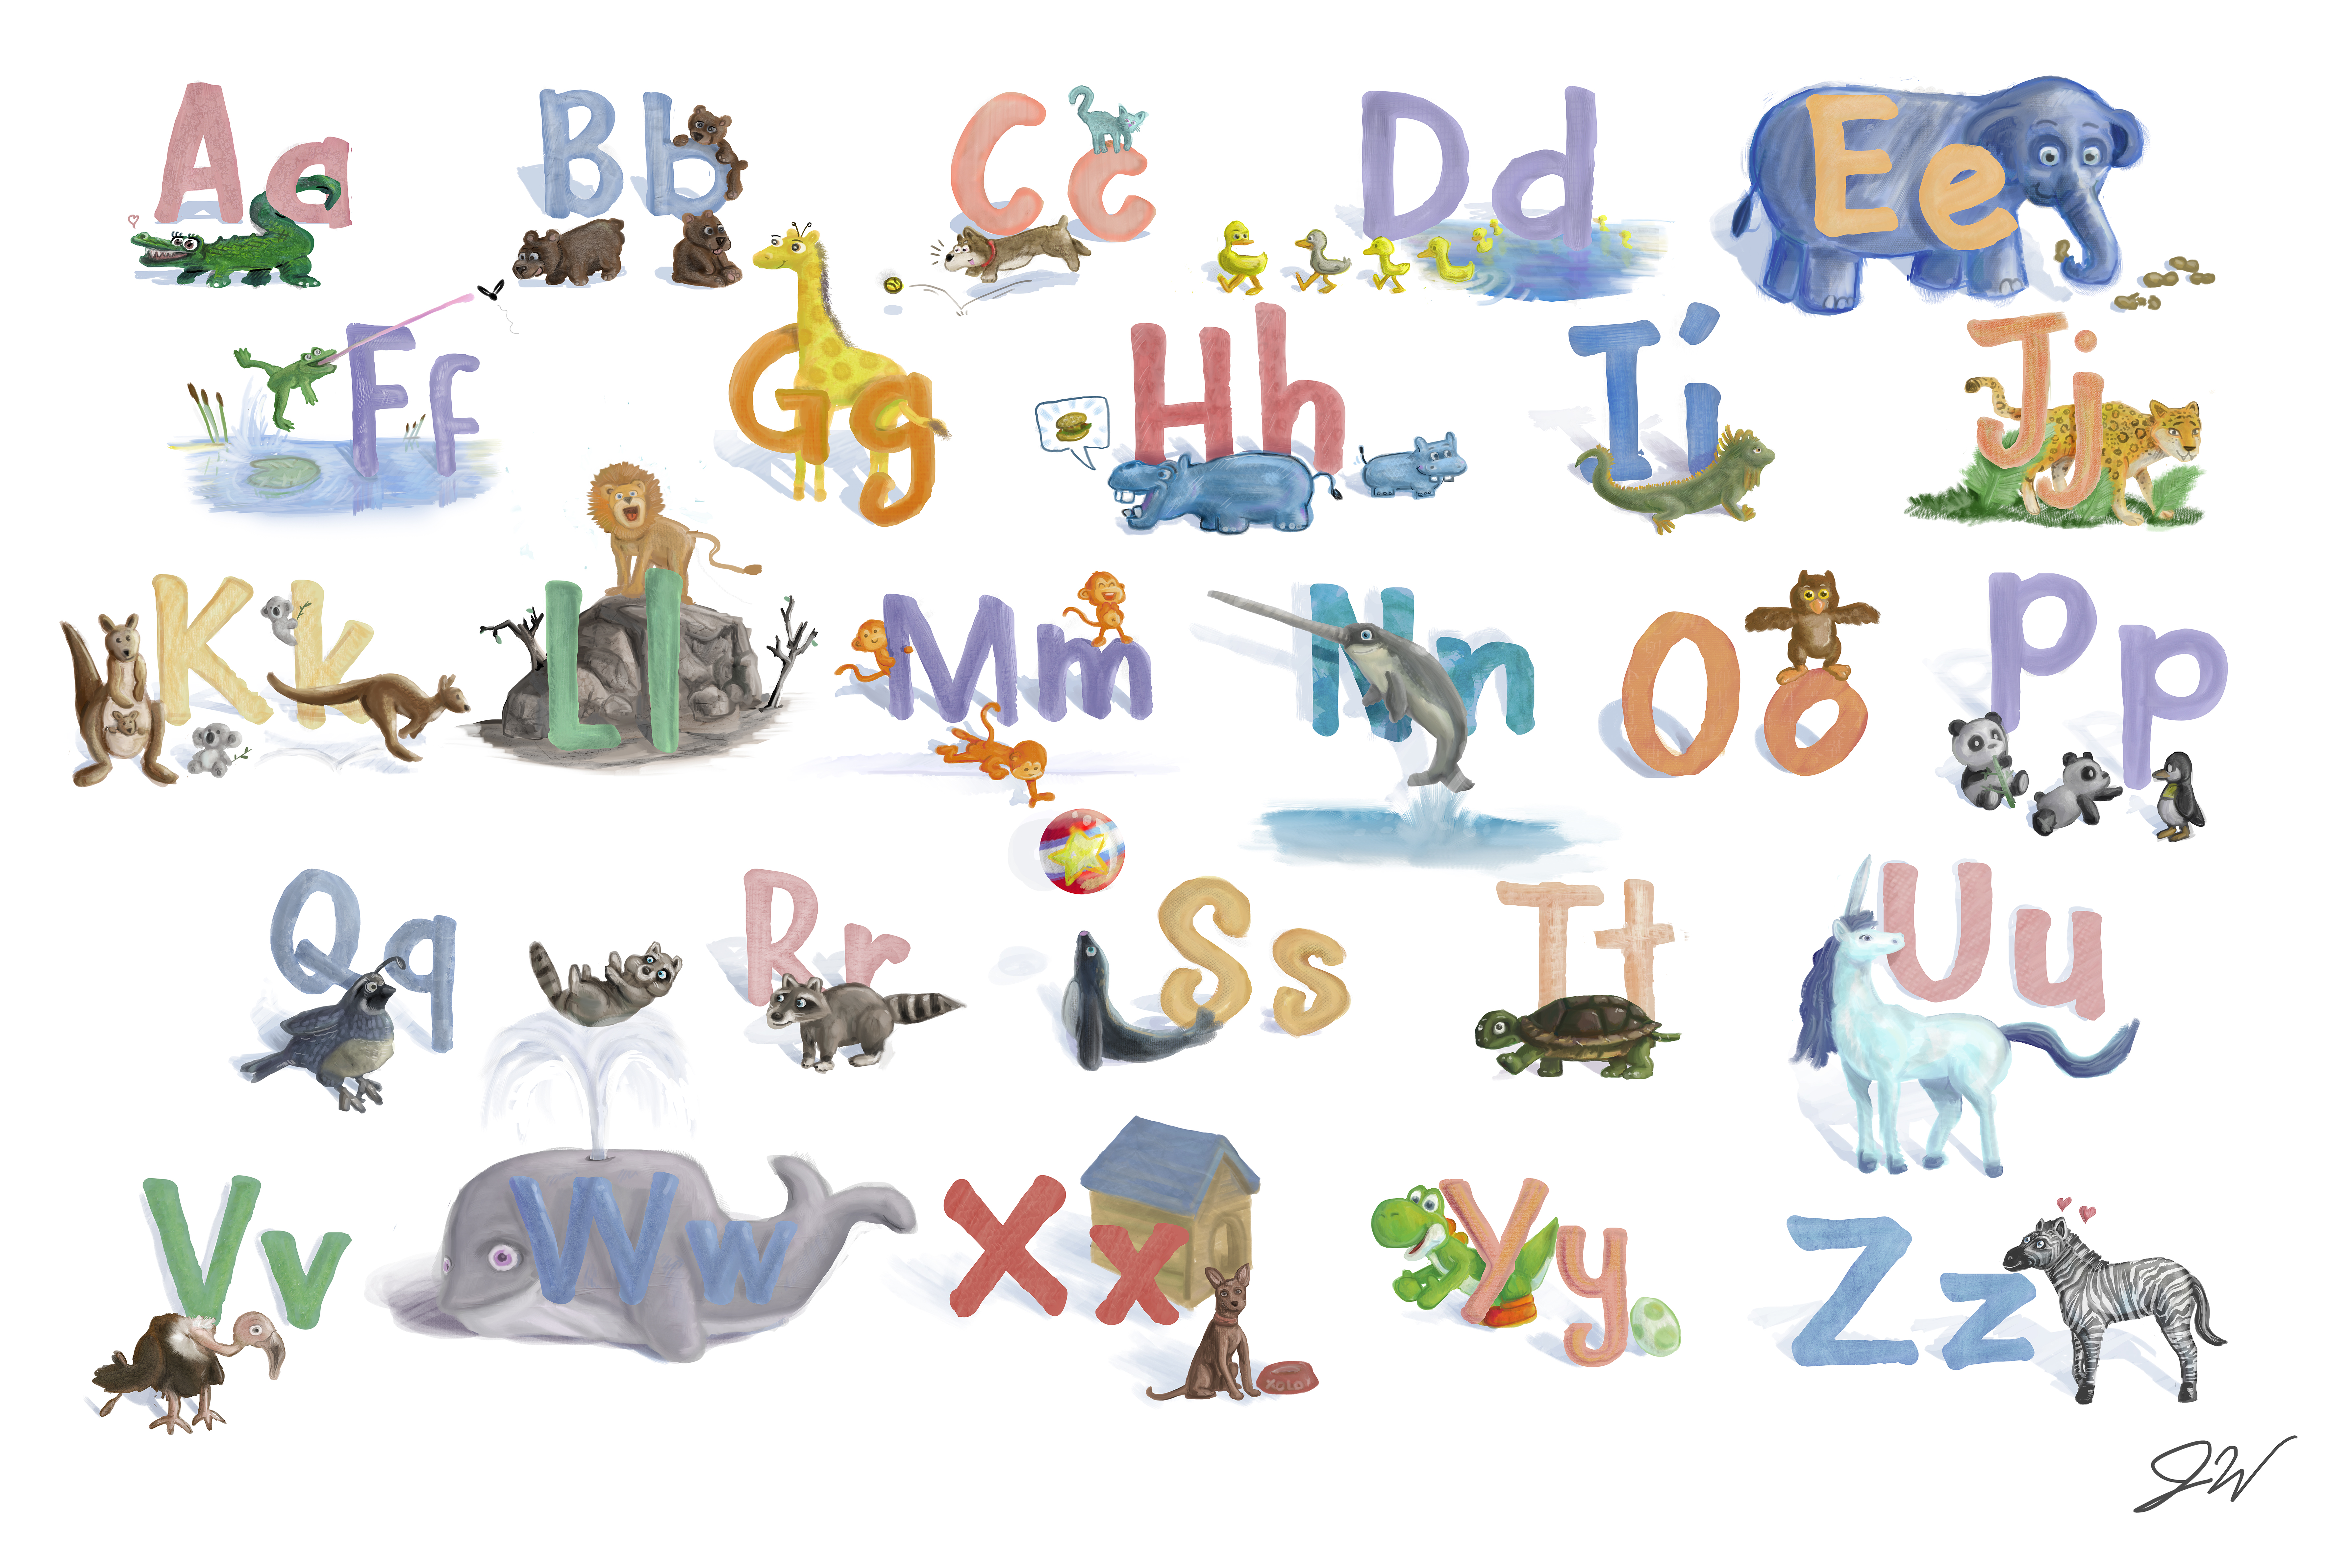 All A to Z HD Alphabets and Letters For Whatsapp DP